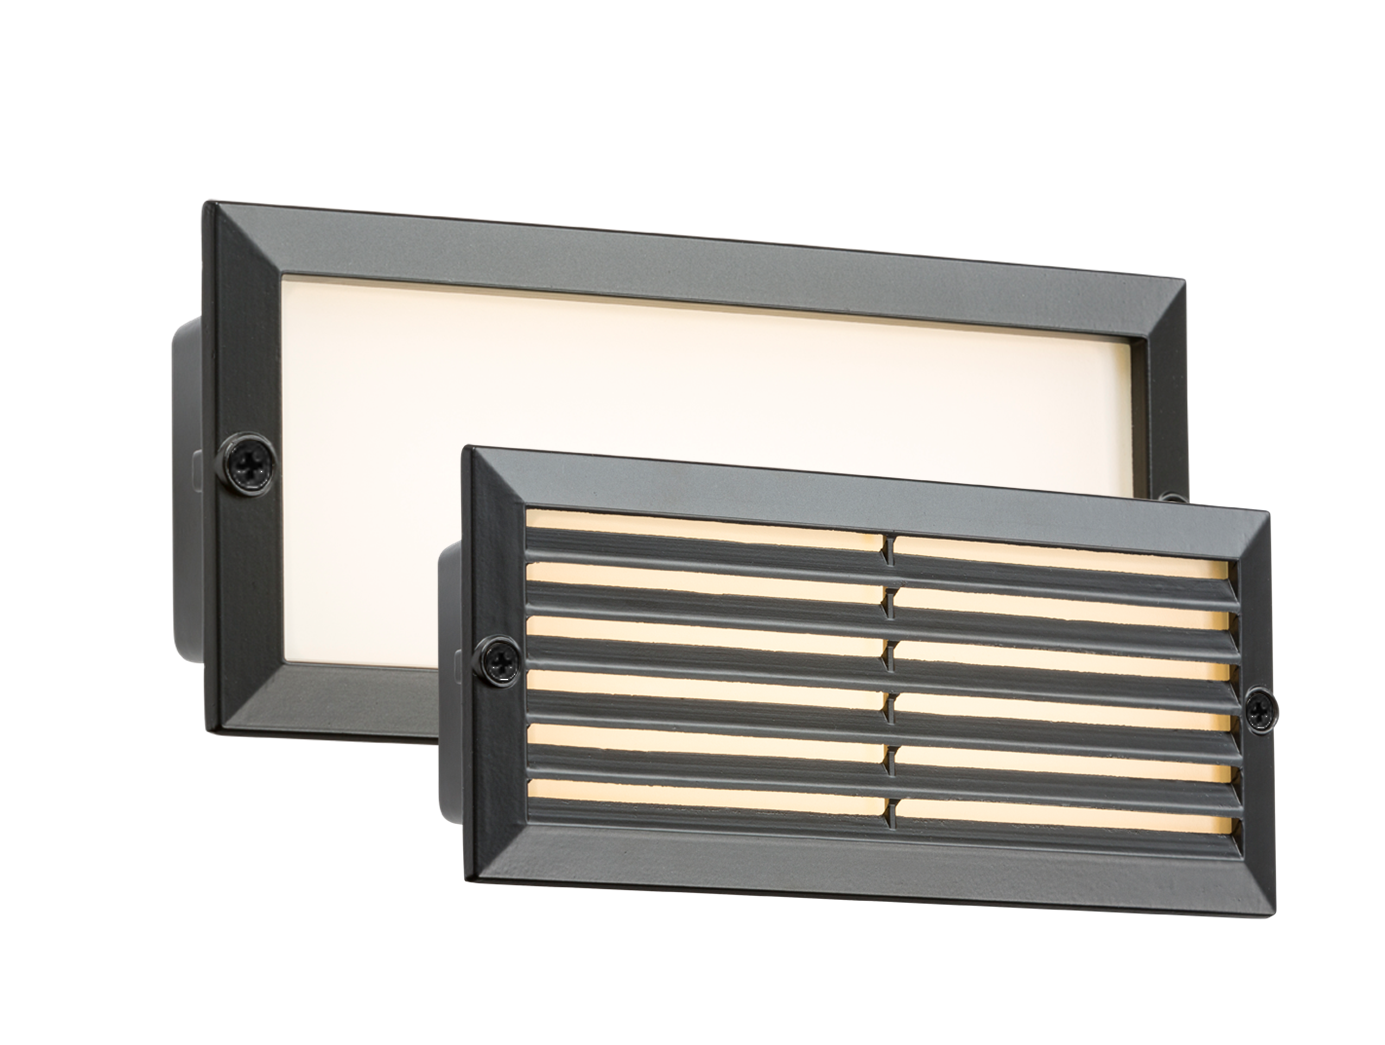 230V IP54 5W WHITE LED BRICK LIGHT - BLACK FASCIA